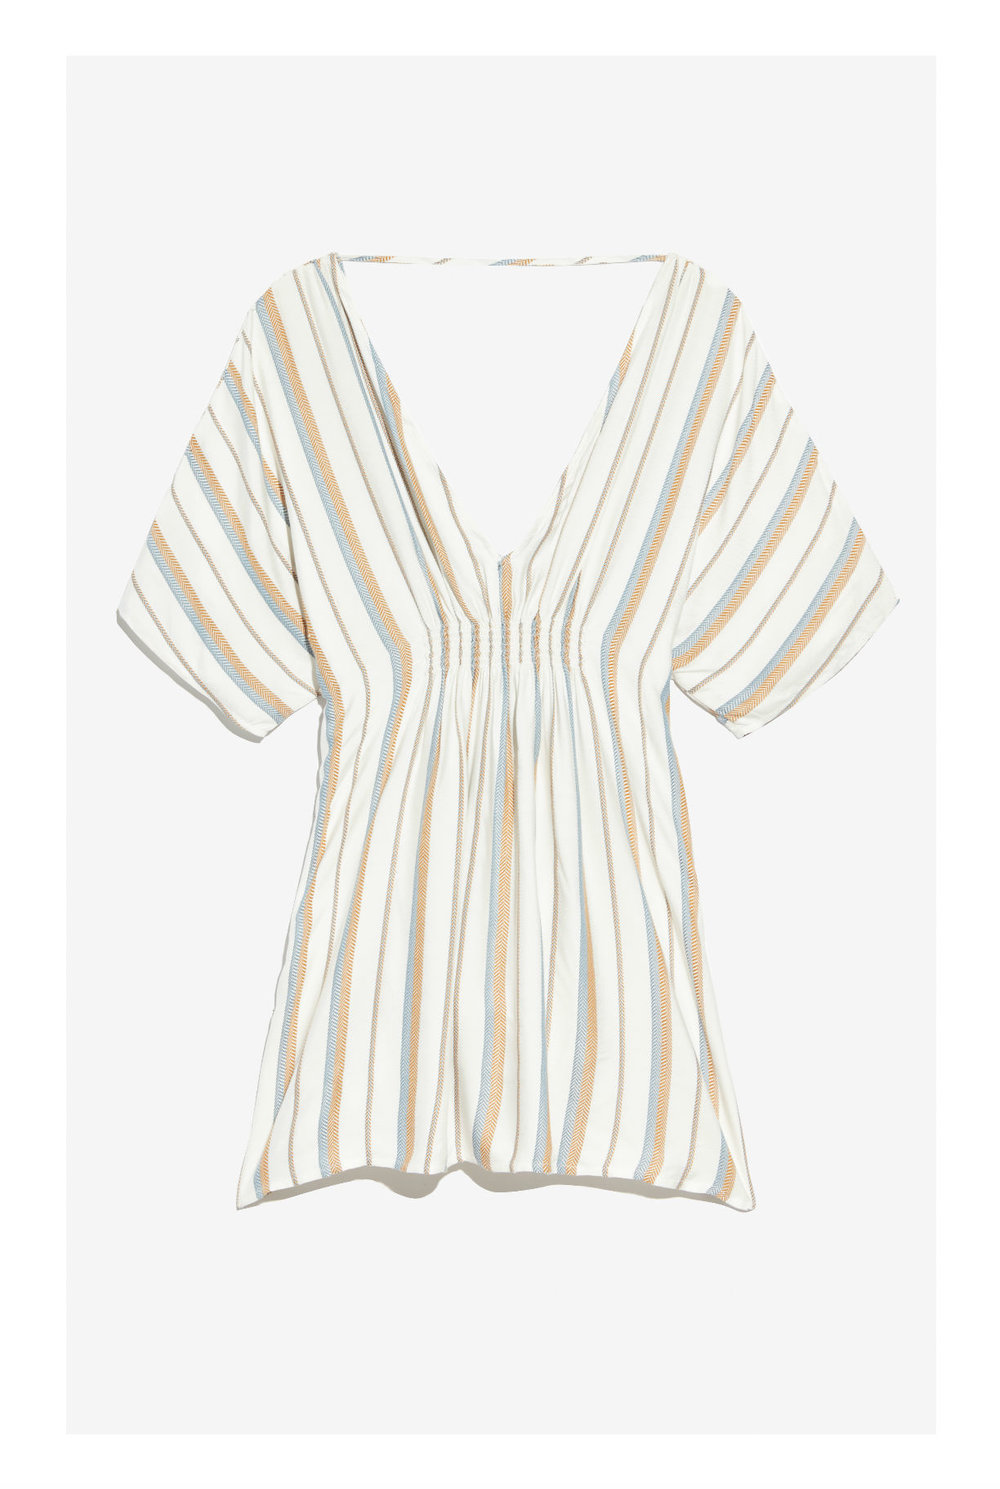 New Arrivals - Beachwear Cover Ups & Dresses. Get ready for those ultimate sunshine getaways.